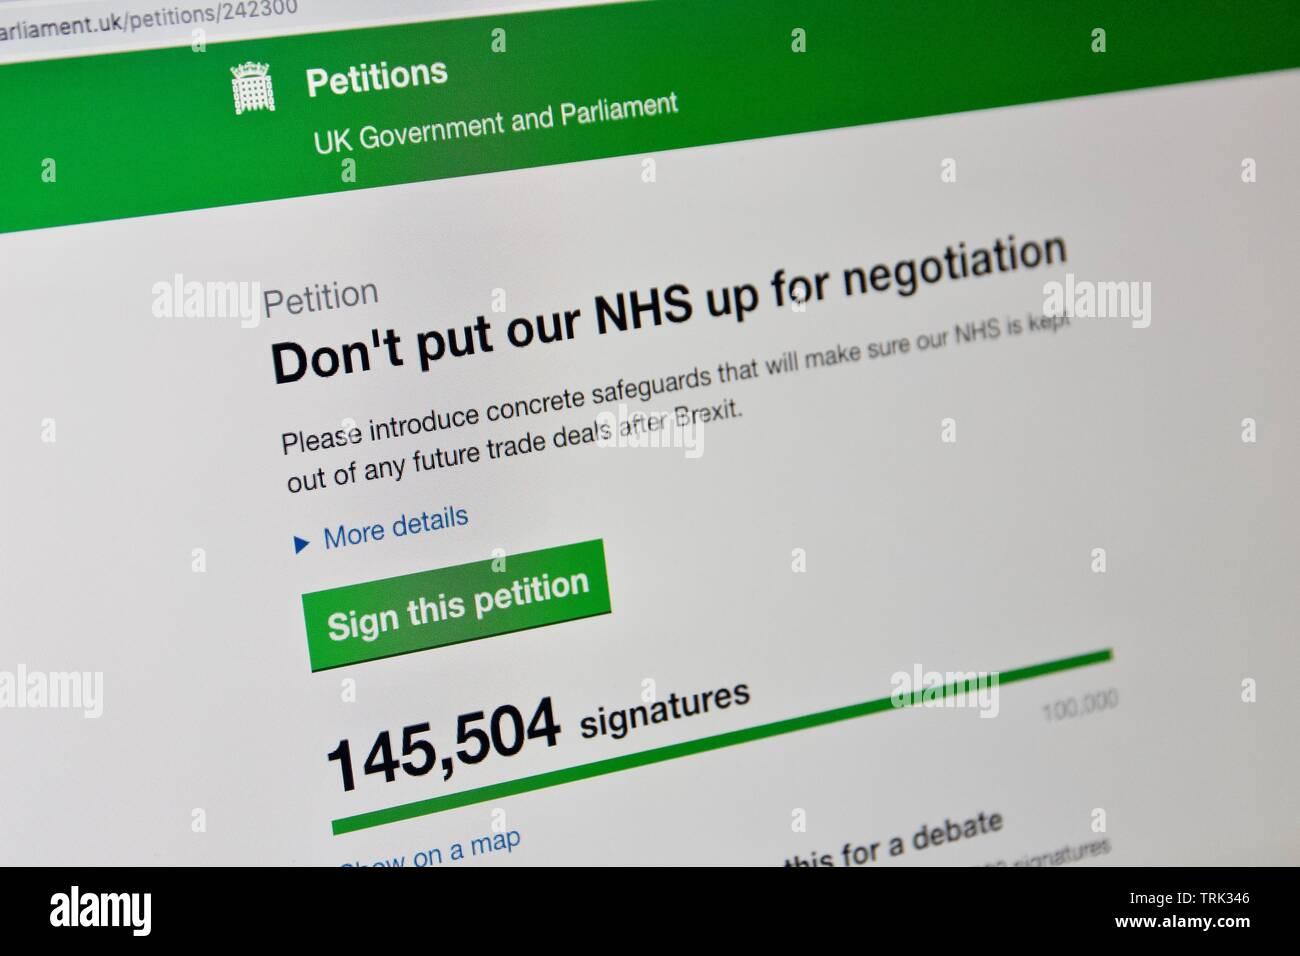 UK online petition for not putting NHS up for negotiation after Brexit - Stock Image